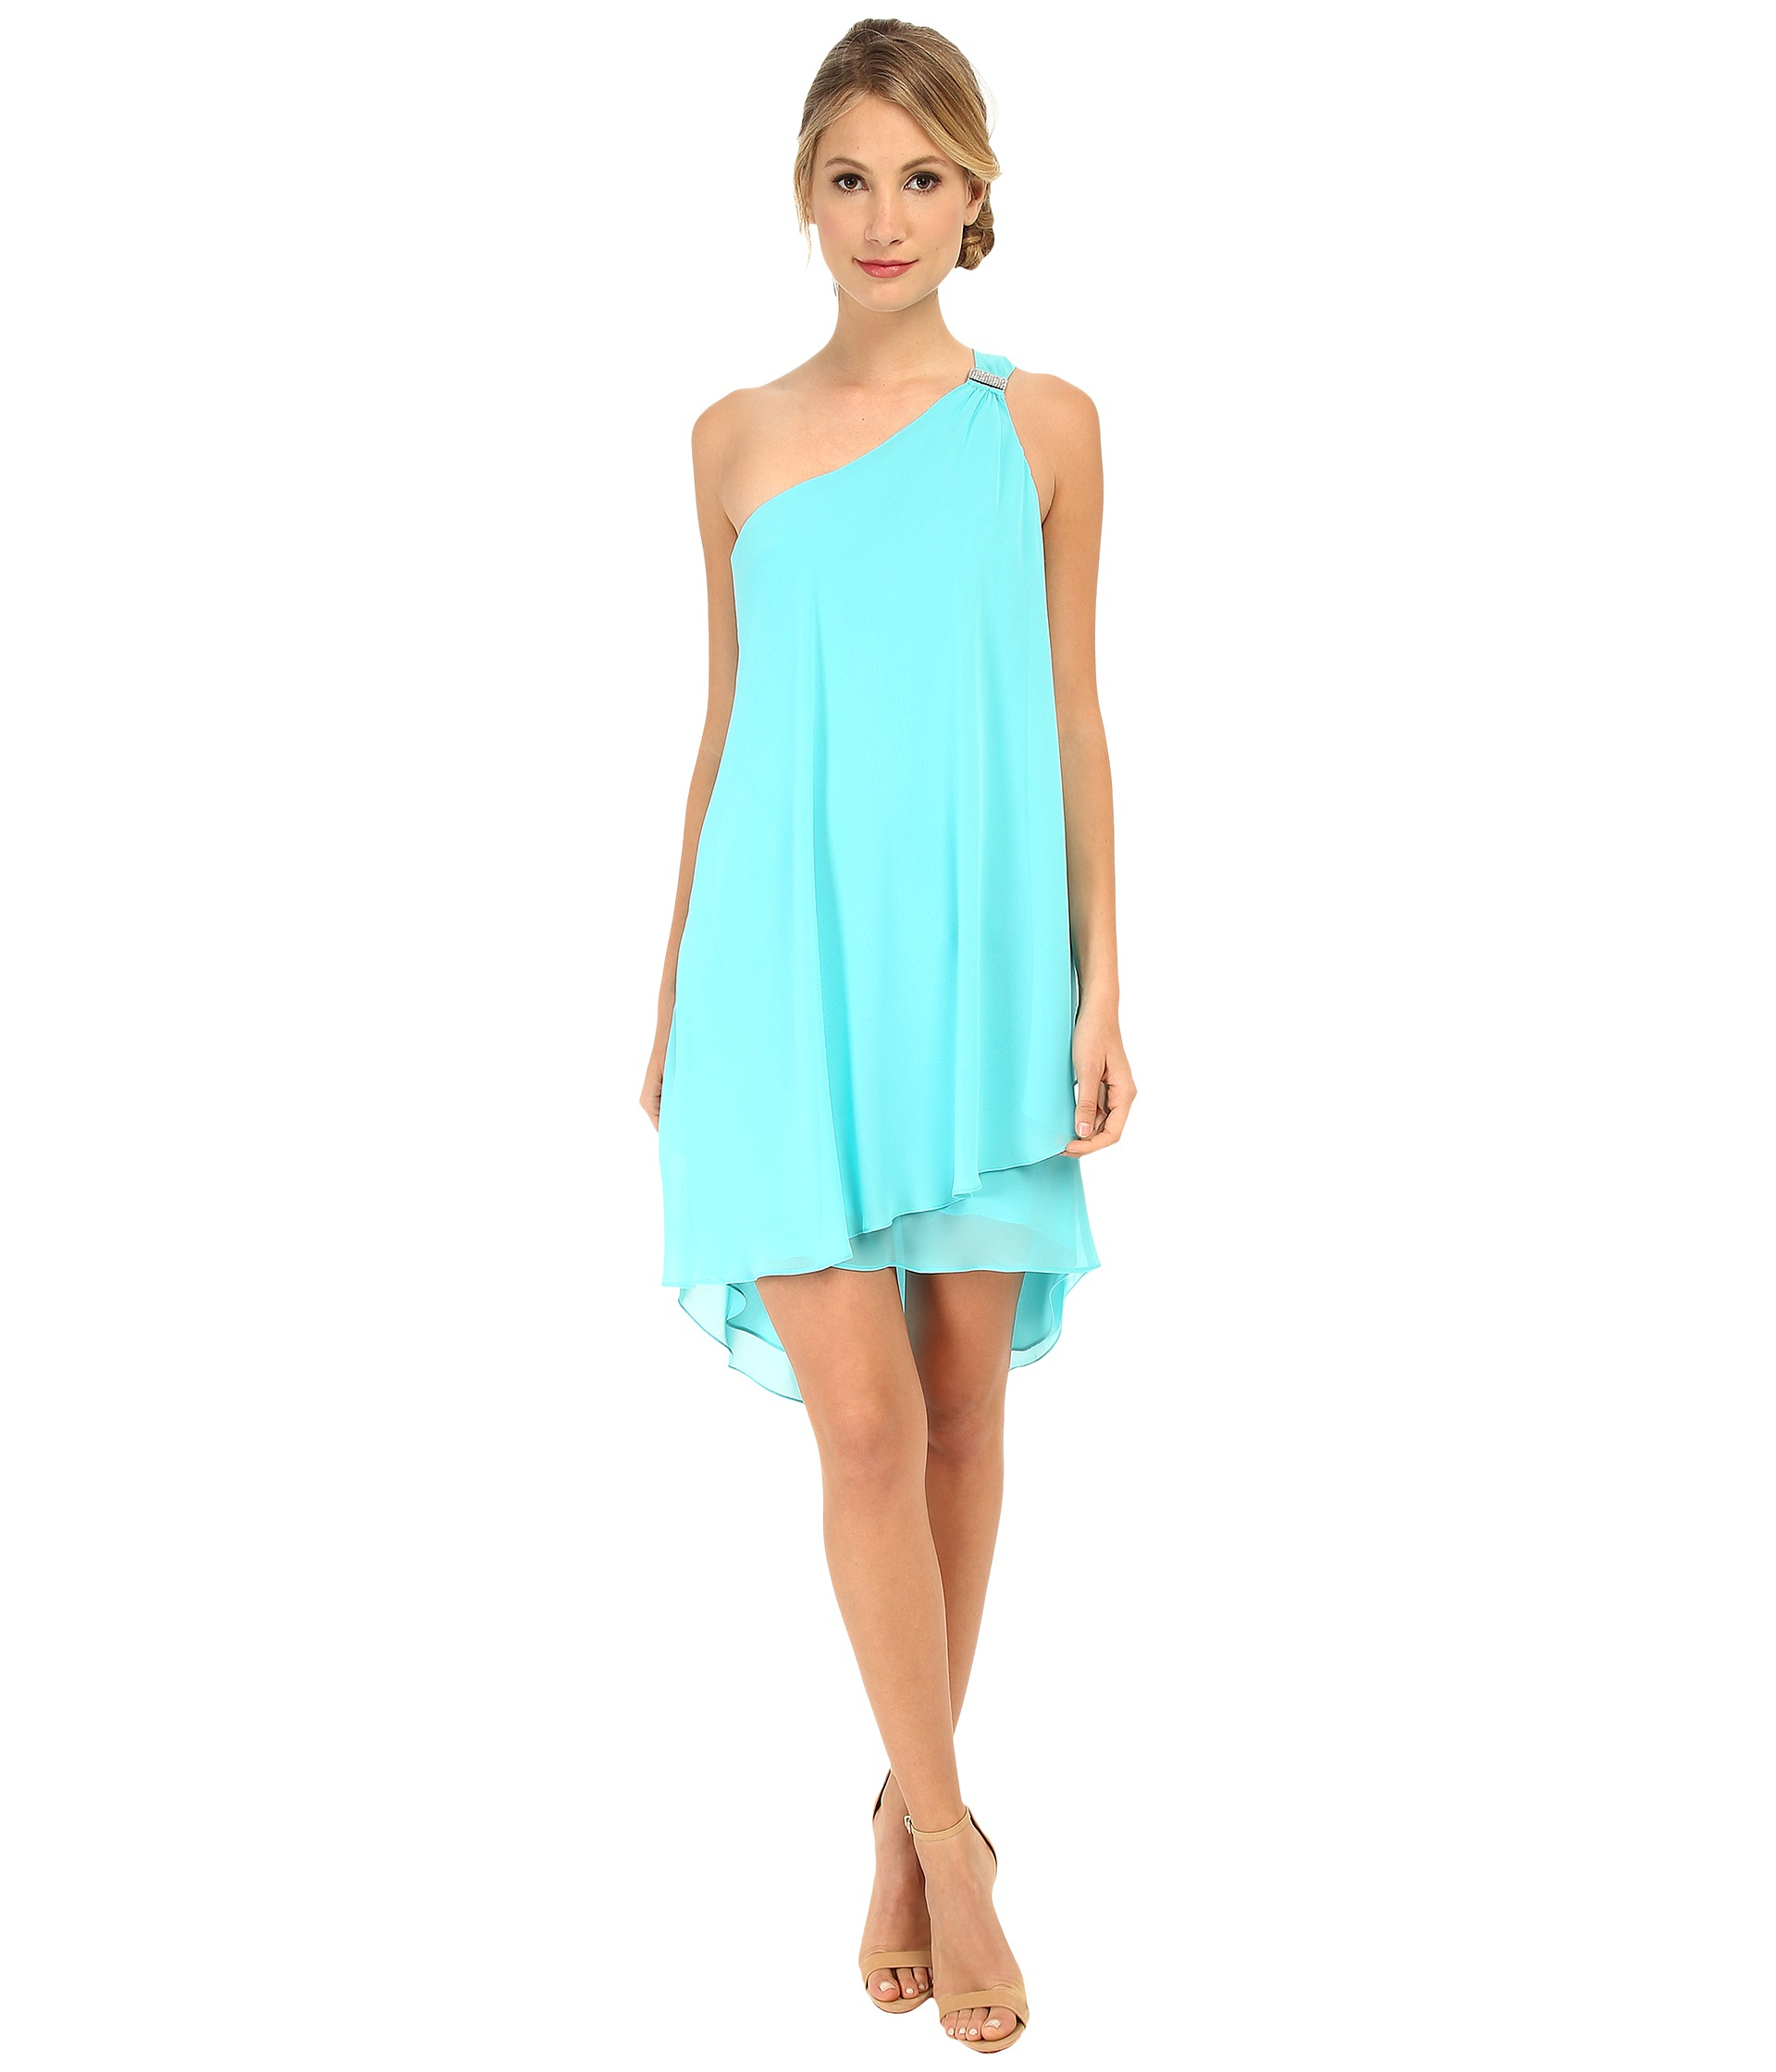 Lyst - Laundry By Shelli Segal Draped Chiffon Cocktail Dress in Blue